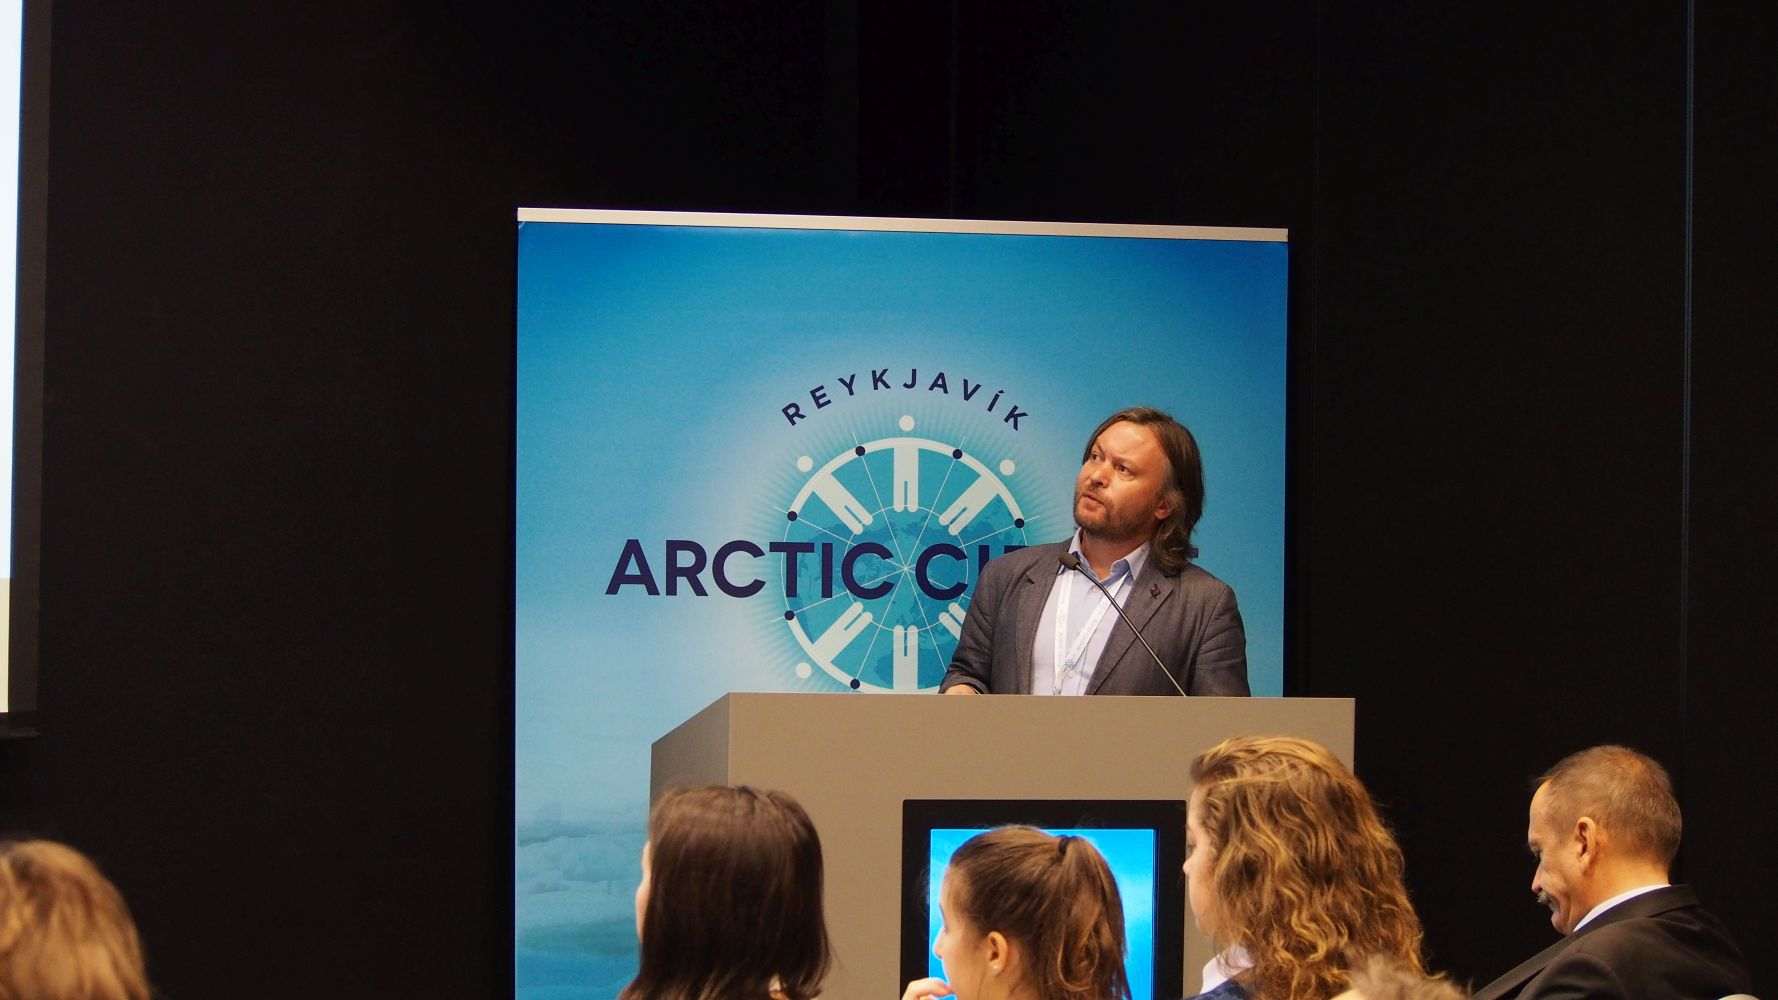 ARCTIC CIRCLE ASSEMBLY 2018